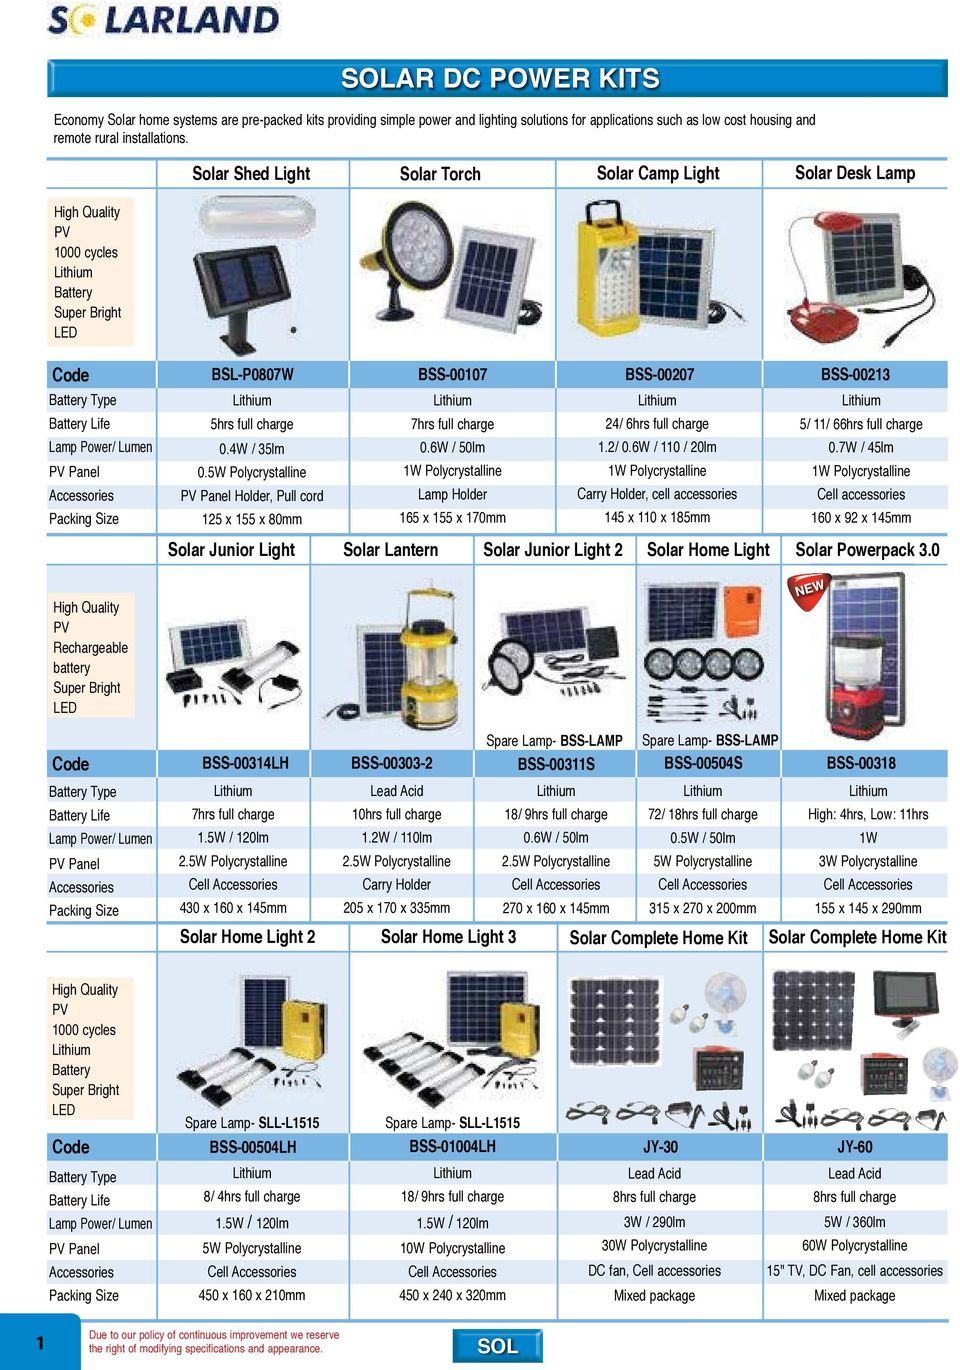 Distributed Solar Power Systems Short Form Catalogue Pdf Panel Cell 6v 1w Polycrystalline Portable 110x60mm Lithium Battery Life 5hrs Full Charge 7hrs 24 6hrs 5